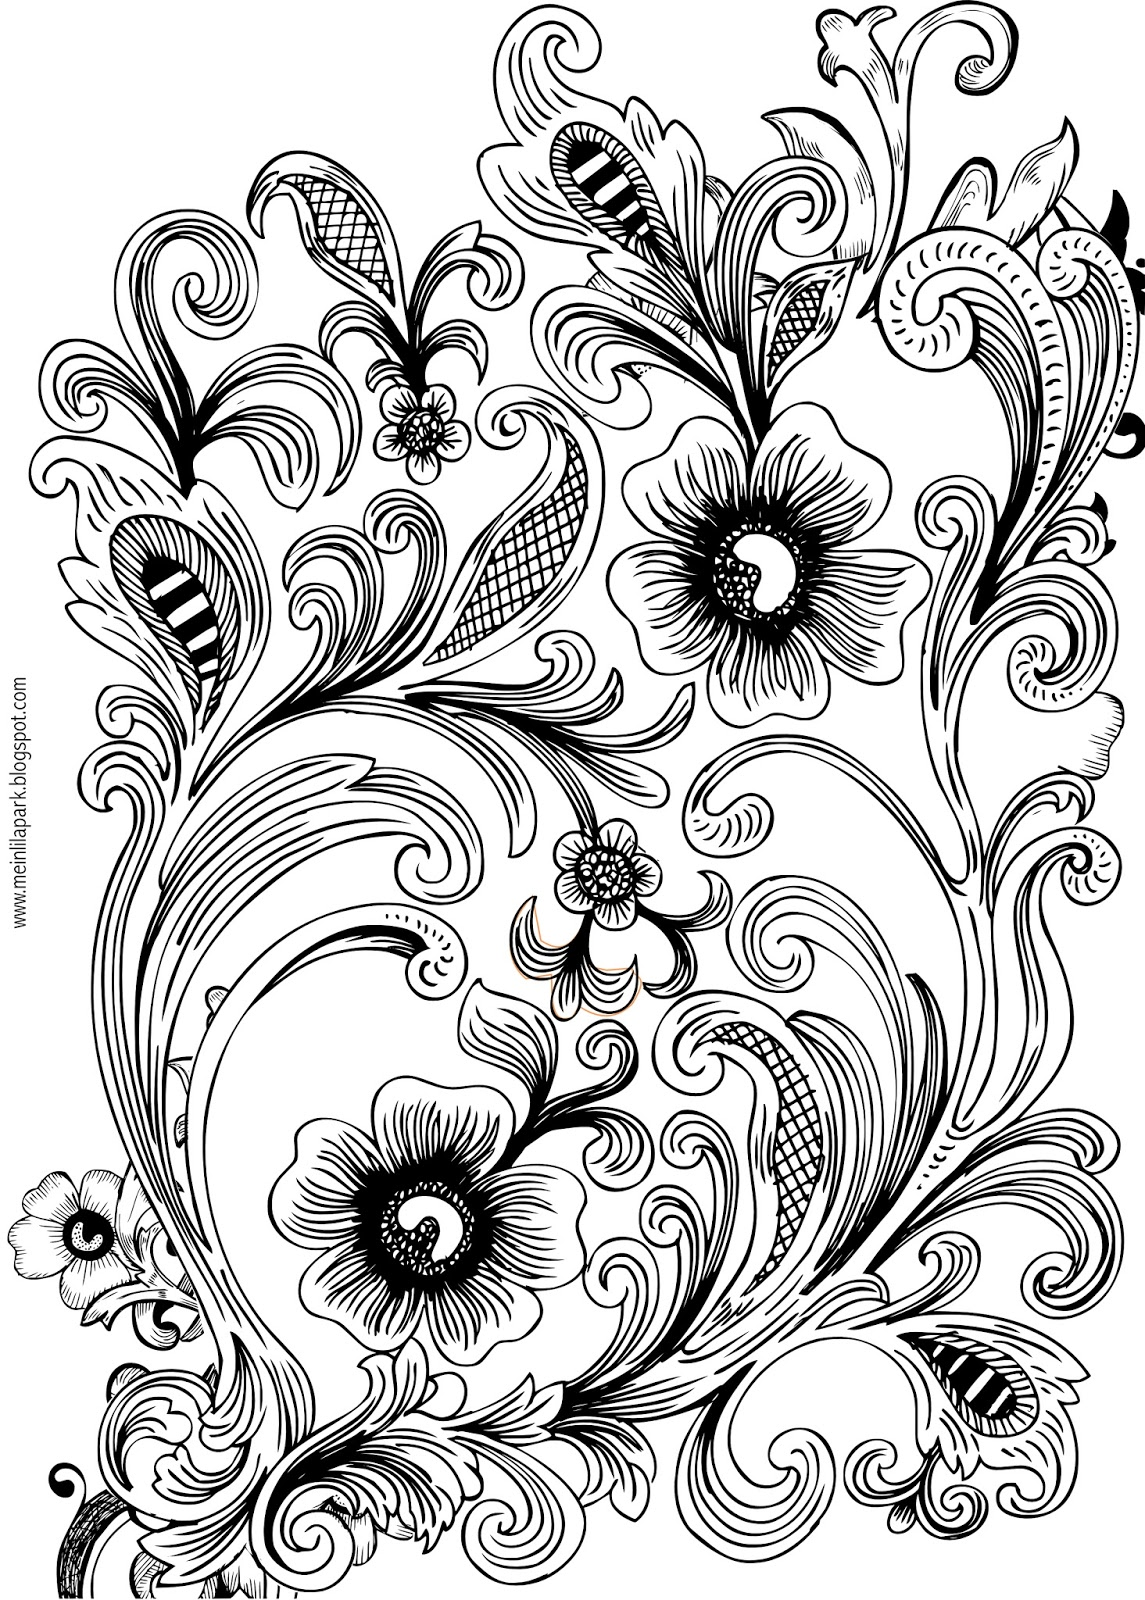 flower doodle coloring pages pin by tima on bojanke flower coloring pages rose flower doodle coloring pages